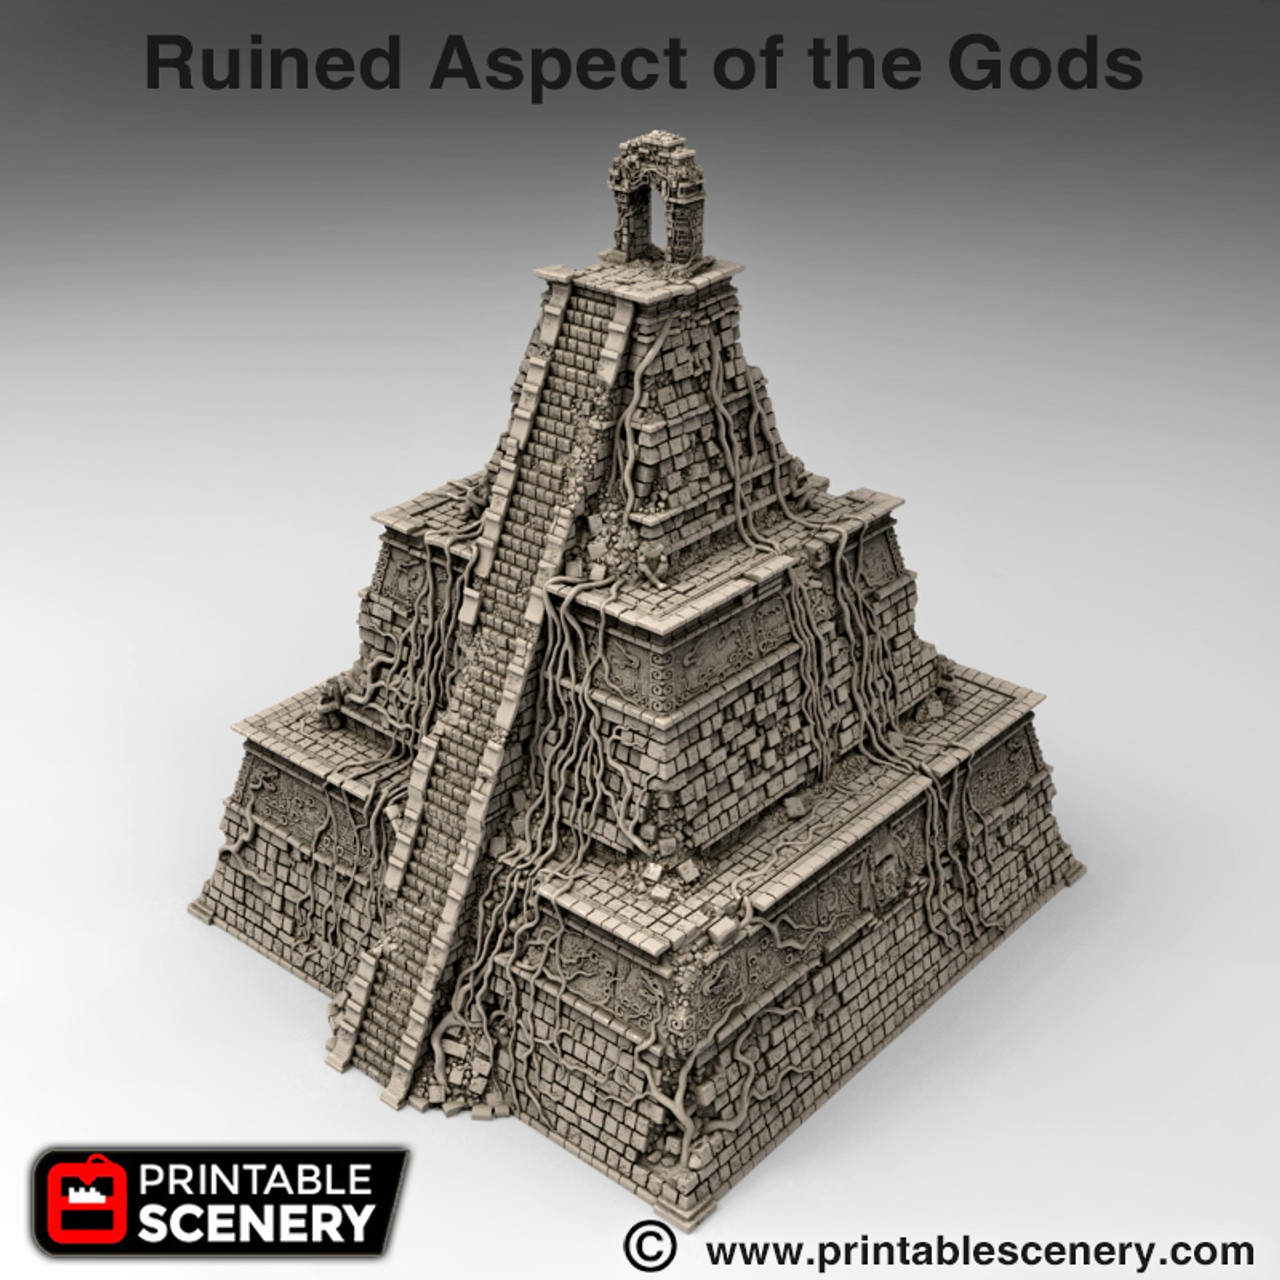 Ruined Aspect of the Gods